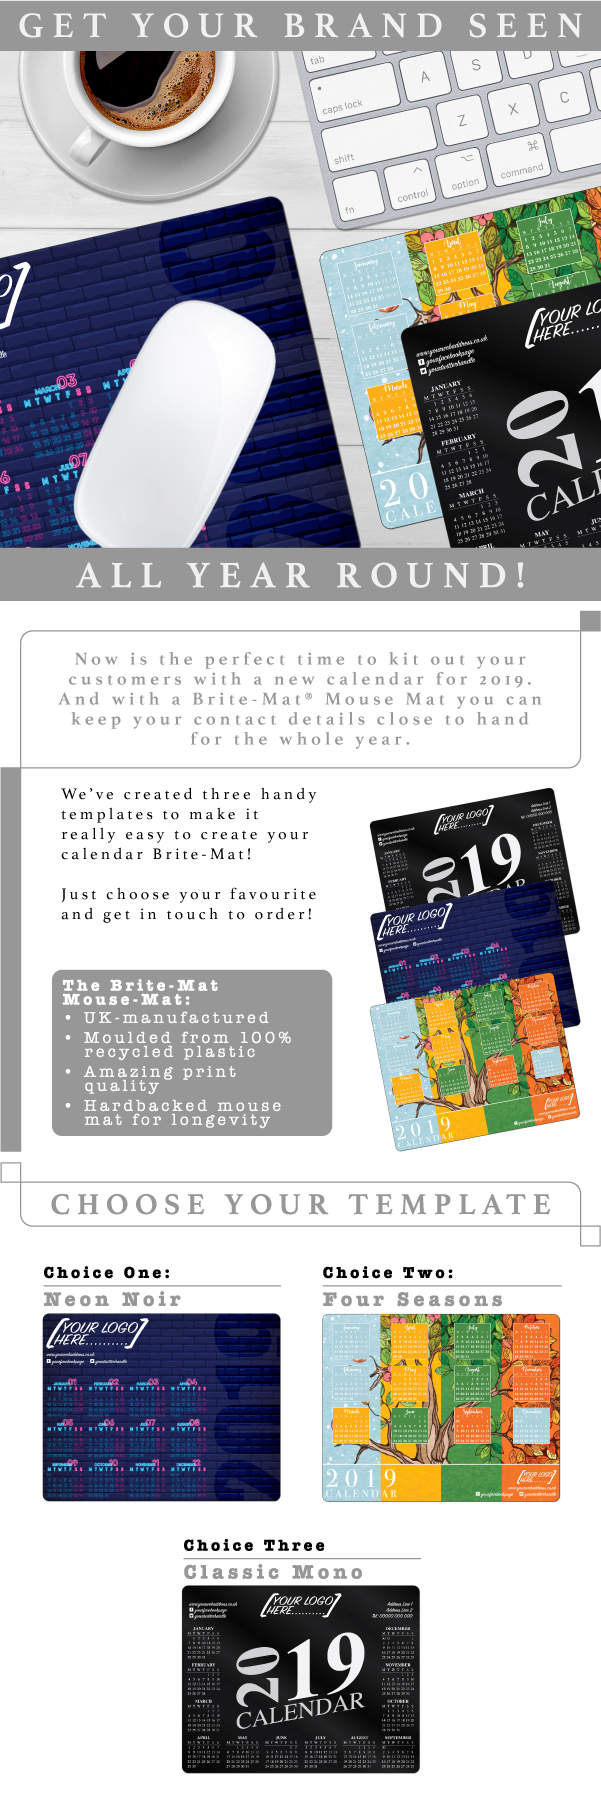 Free calendar templates on 2019 Brite-Mat Mouse Mats from Printit4u